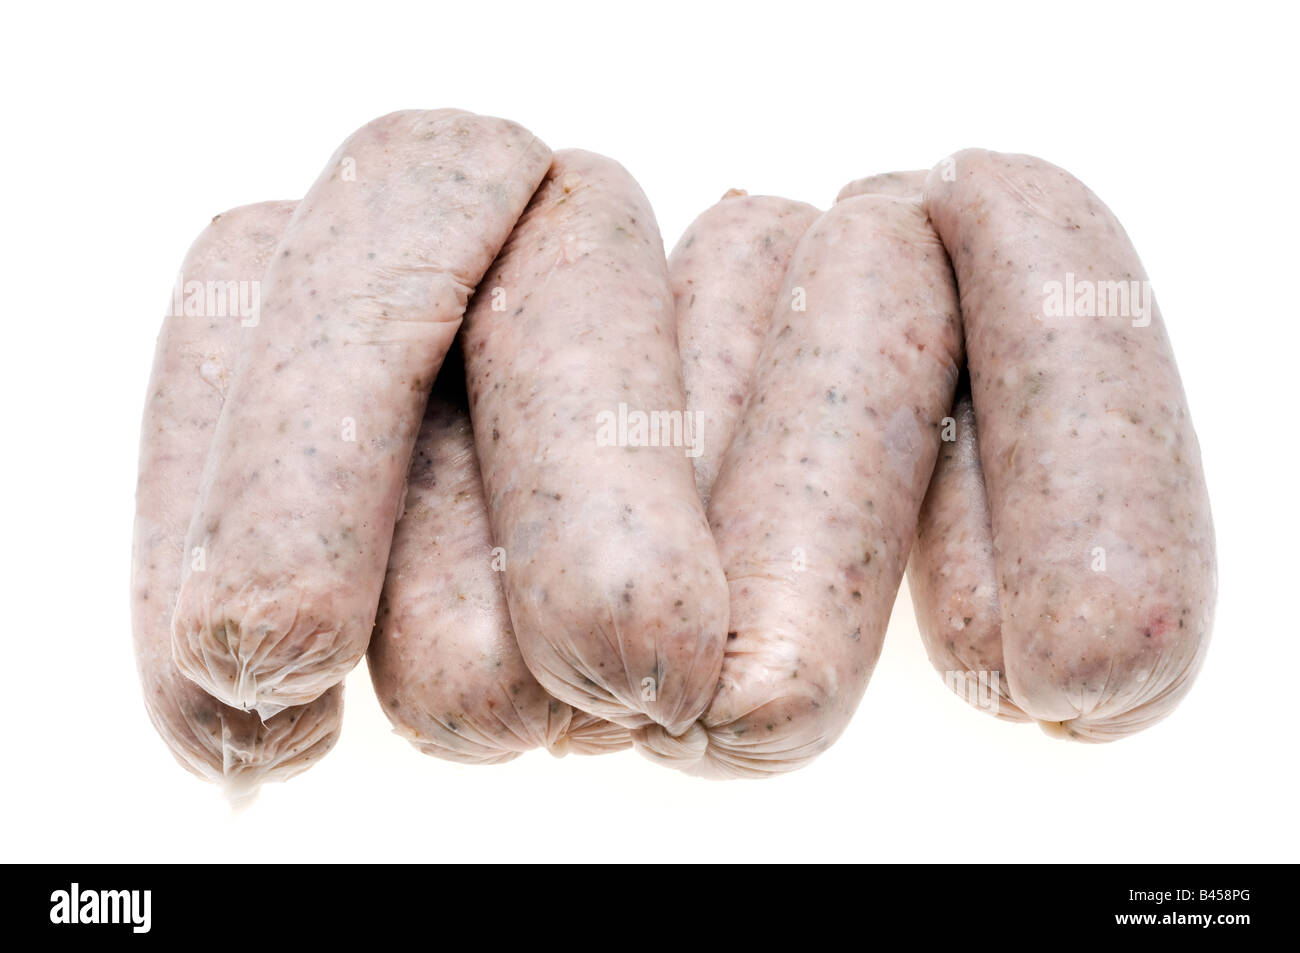 Eight links of Lincolnshire sausages - Stock Image